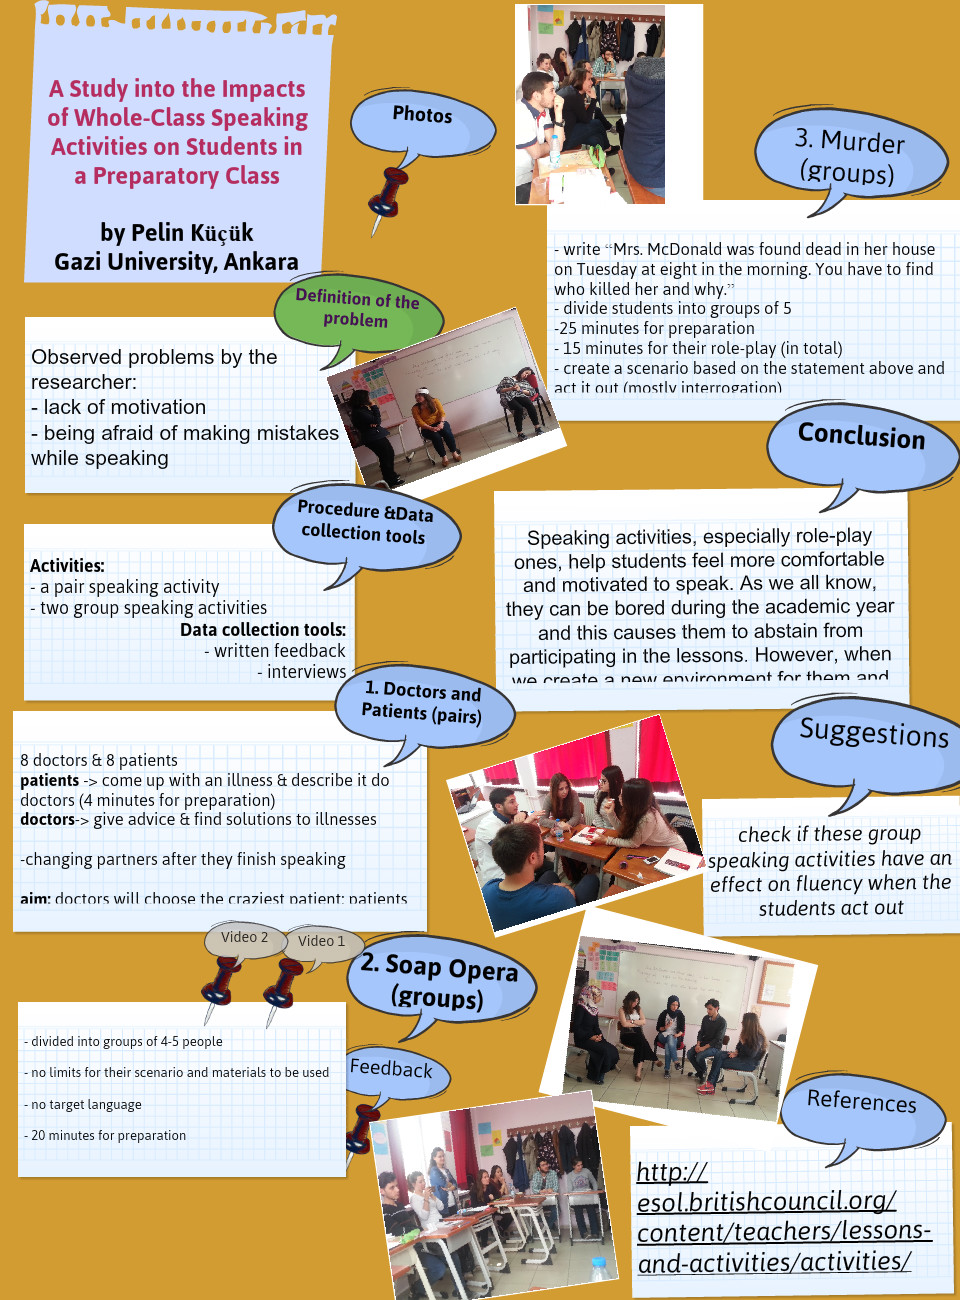 A Study into the Impacts of Whole-Class Speaking Activities